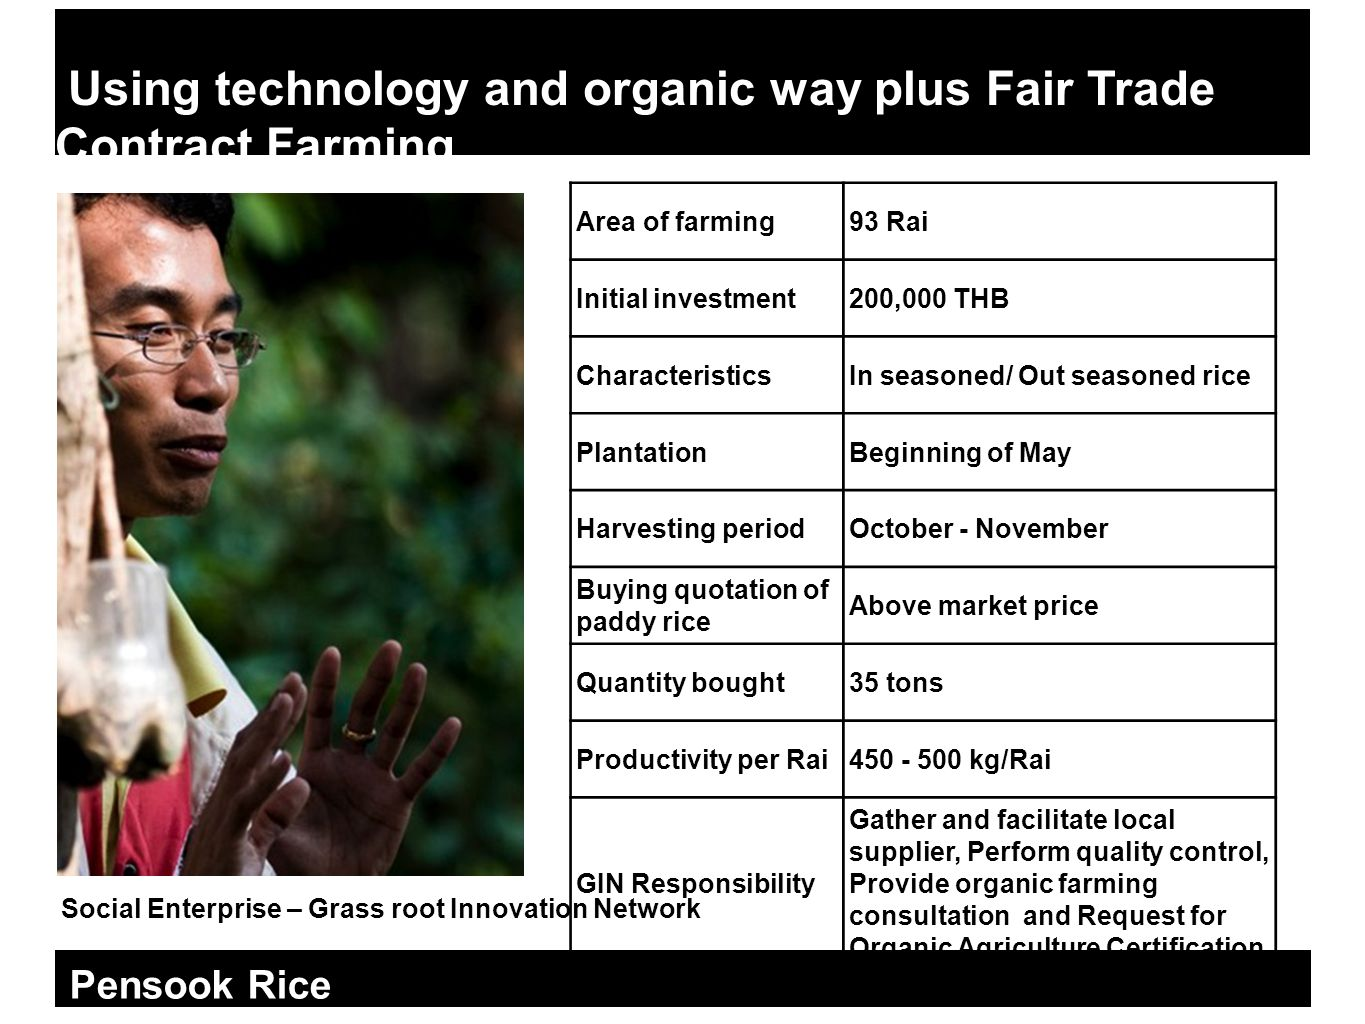 Pensook Rice Using technology and organic way plus Fair Trade Contract Farming Social Enterprise – Grass root Innovation Network Area of farming93 Rai Initial investment200,000 THB CharacteristicsIn seasoned/ Out seasoned rice PlantationBeginning of May Harvesting periodOctober - November Buying quotation of paddy rice Above market price Quantity bought35 tons Productivity per Rai450 - 500 kg/Rai GIN Responsibility Gather and facilitate local supplier, Perform quality control, Provide organic farming consultation and Request for Organic Agriculture Certification